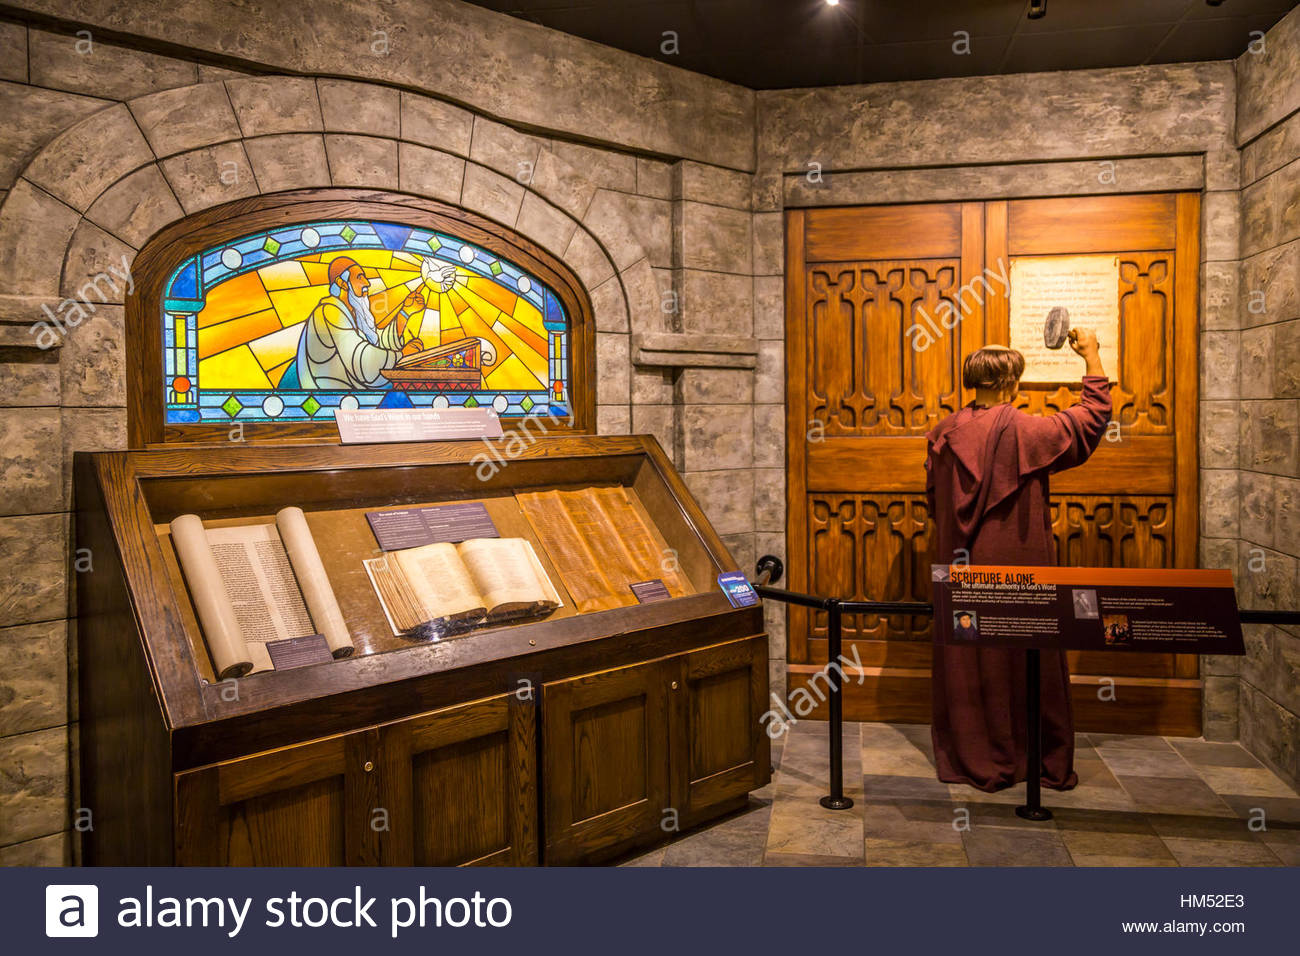 a martin luther biblical exhibit at the creation museum in stock